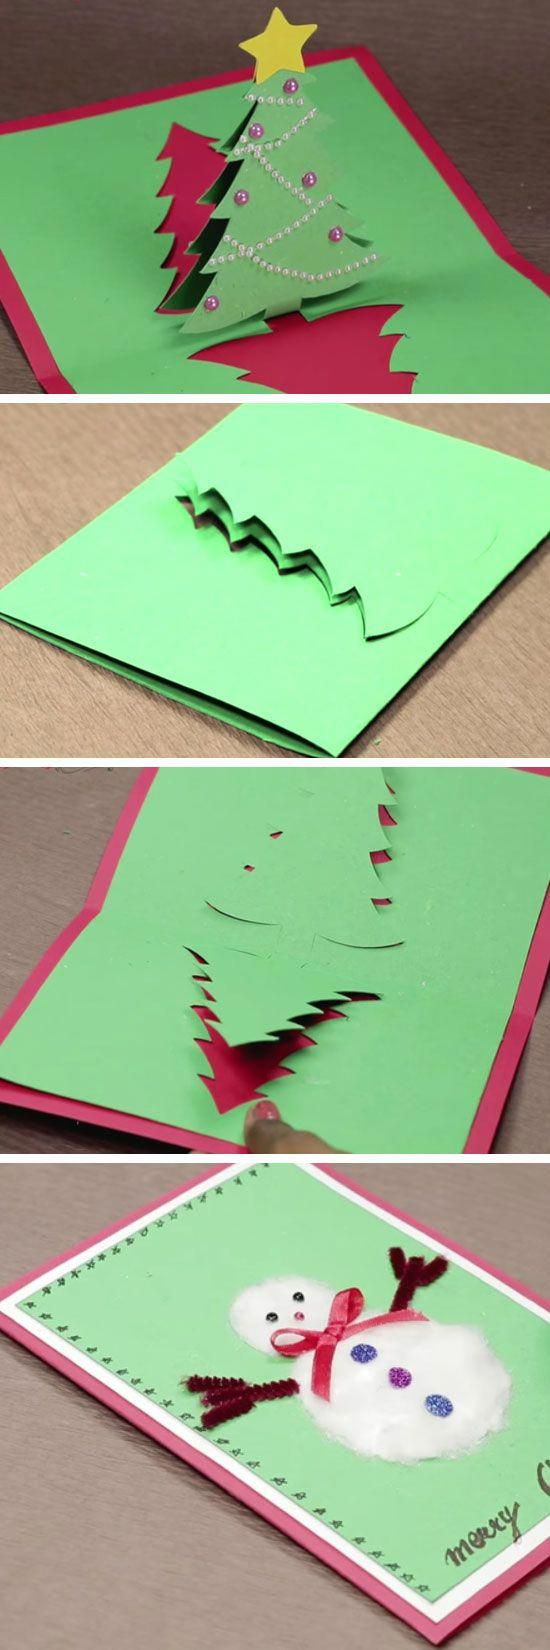 DIY Pop Up Christmas Card with Tree and Snowman | DIY Christmas Card Ideas for F…